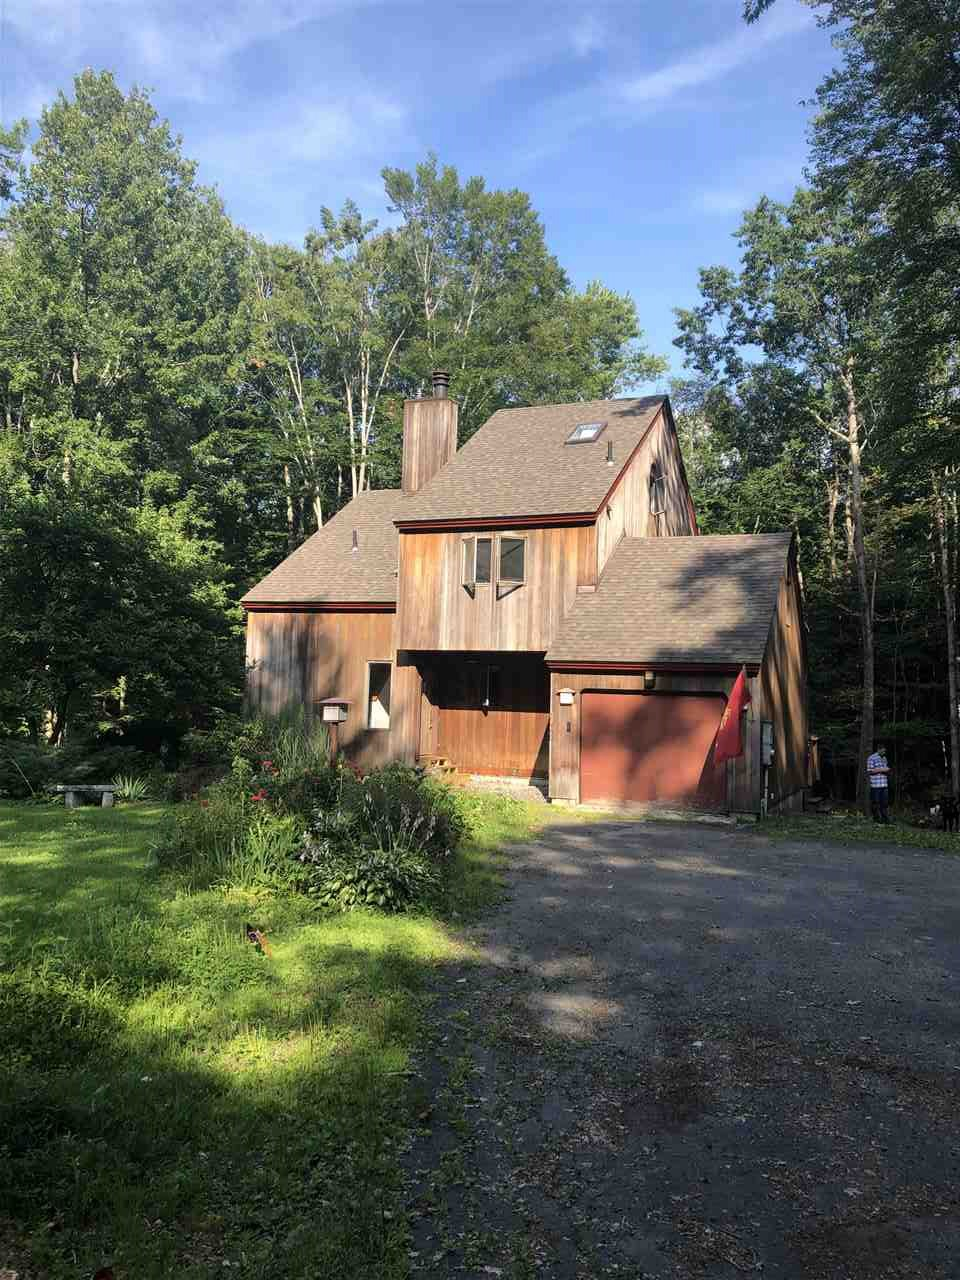 MLS 4768200: 69 Forestview Drive, Chesterfield NH